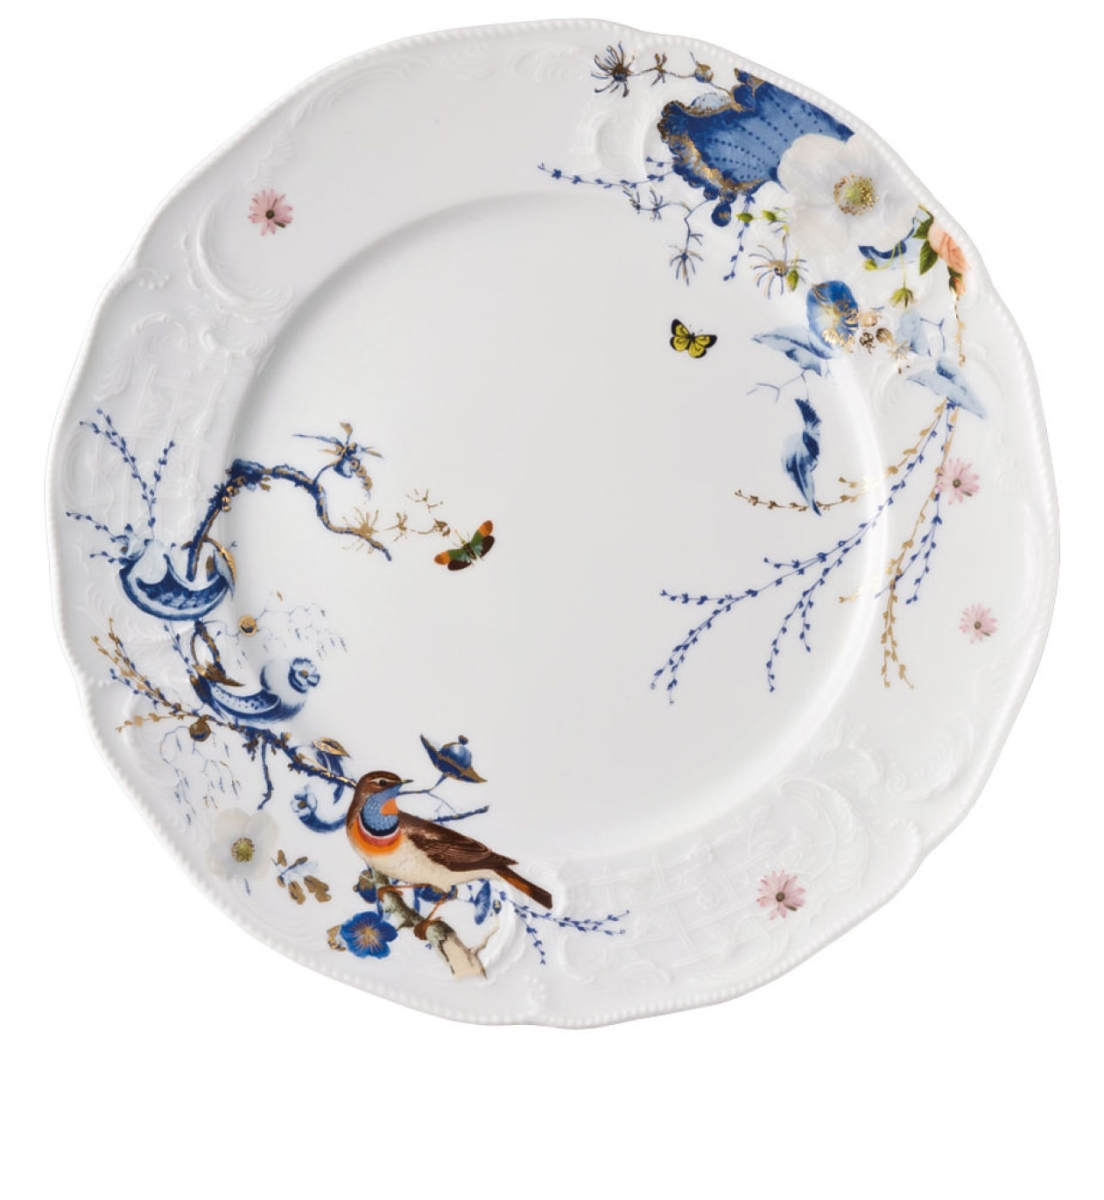 Service Weiß 6 X Service Plate In Porcelain Rosenthal